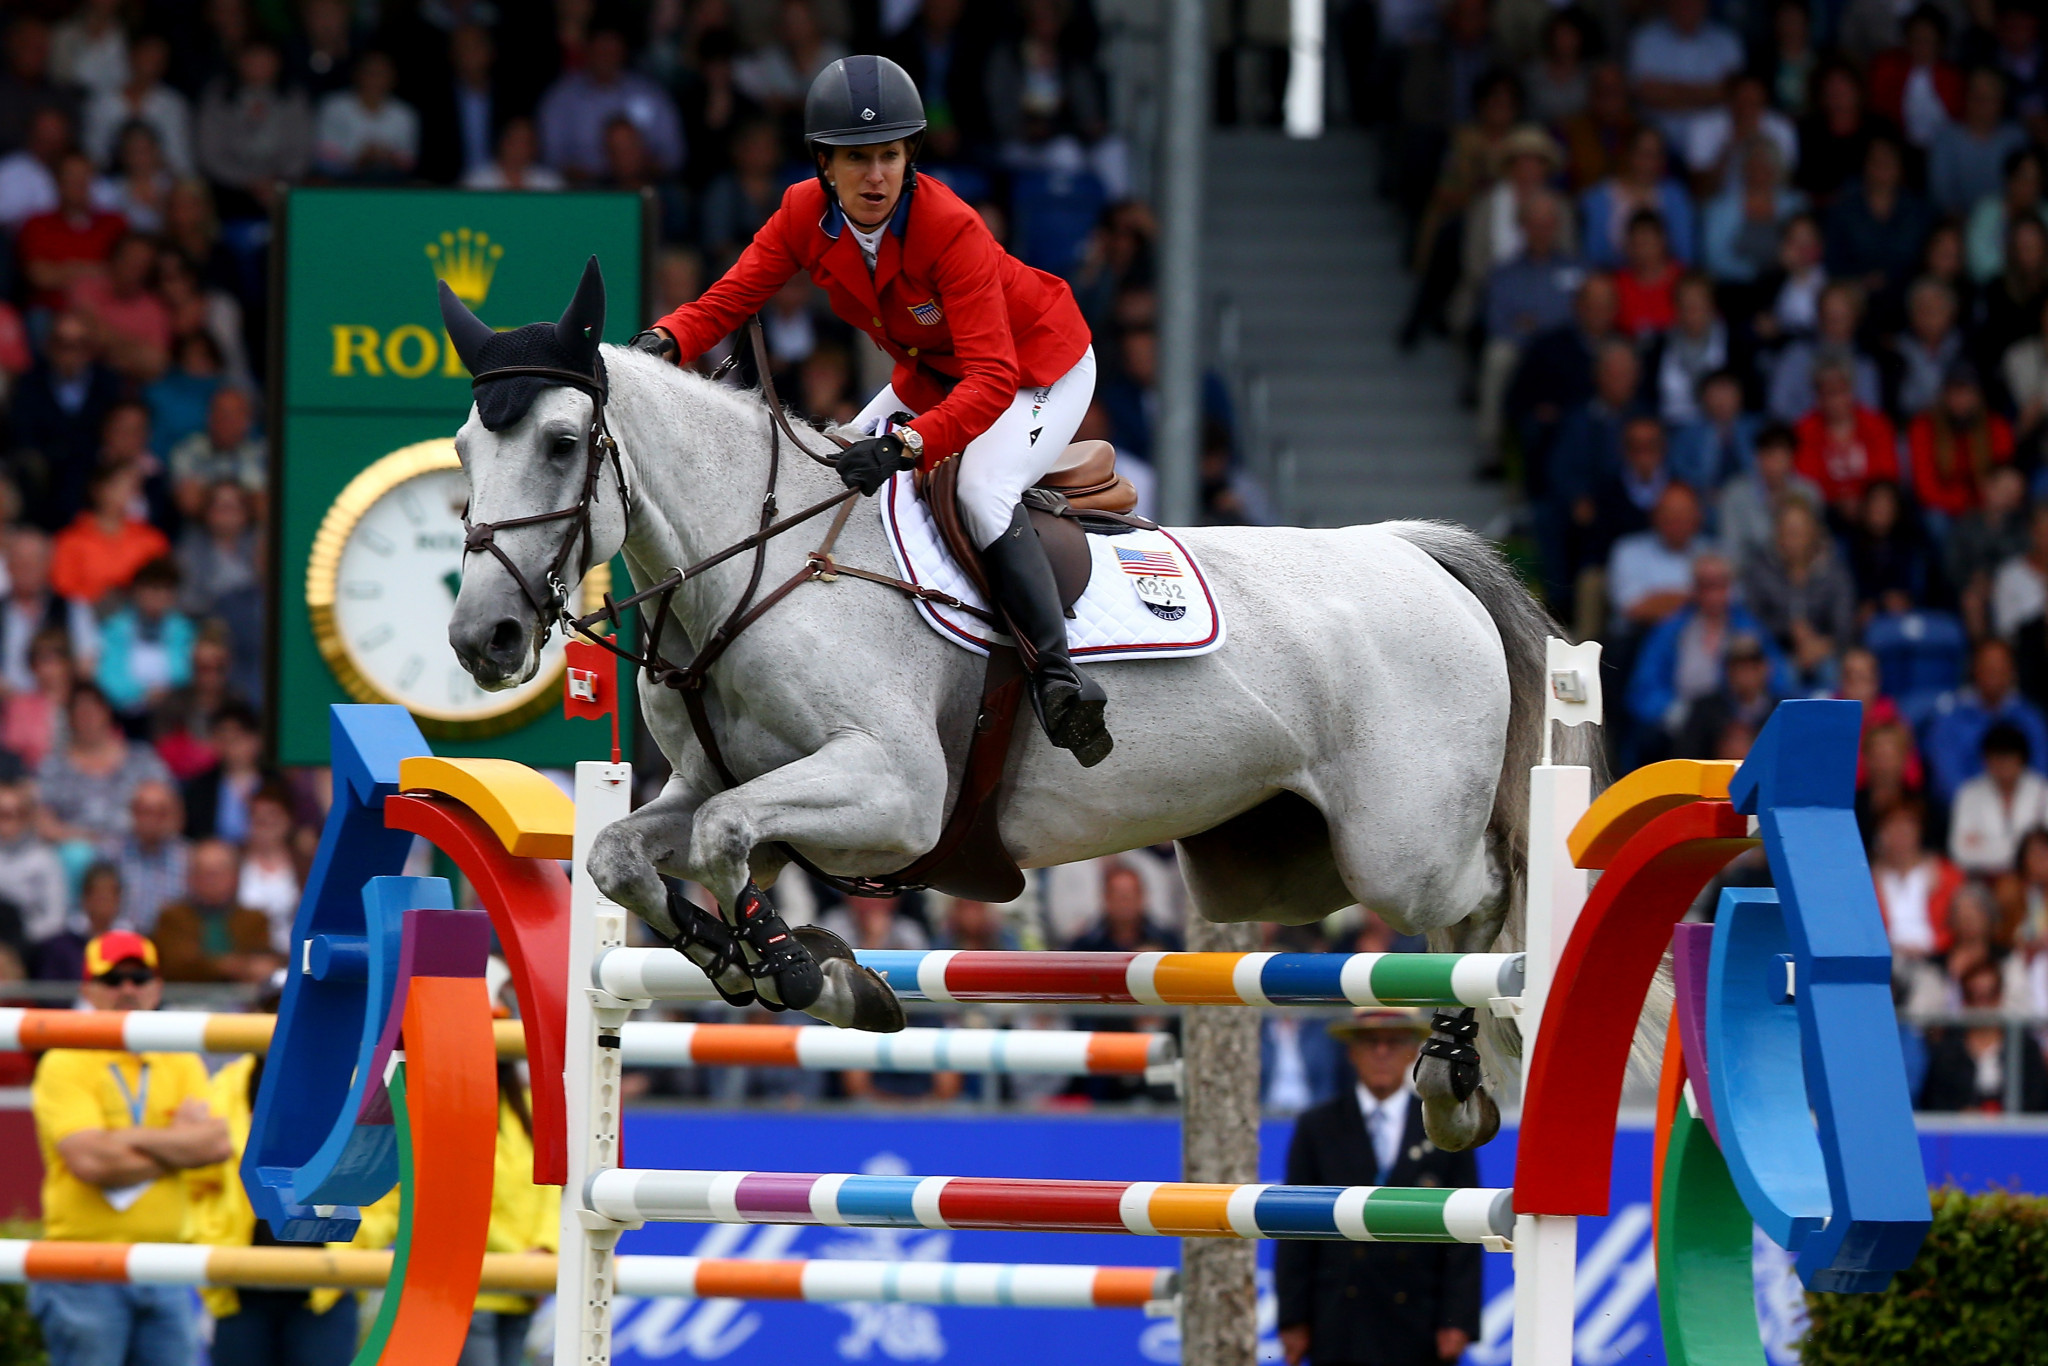 The United States' Laura Kraut had to settle for second place ©Getty Images